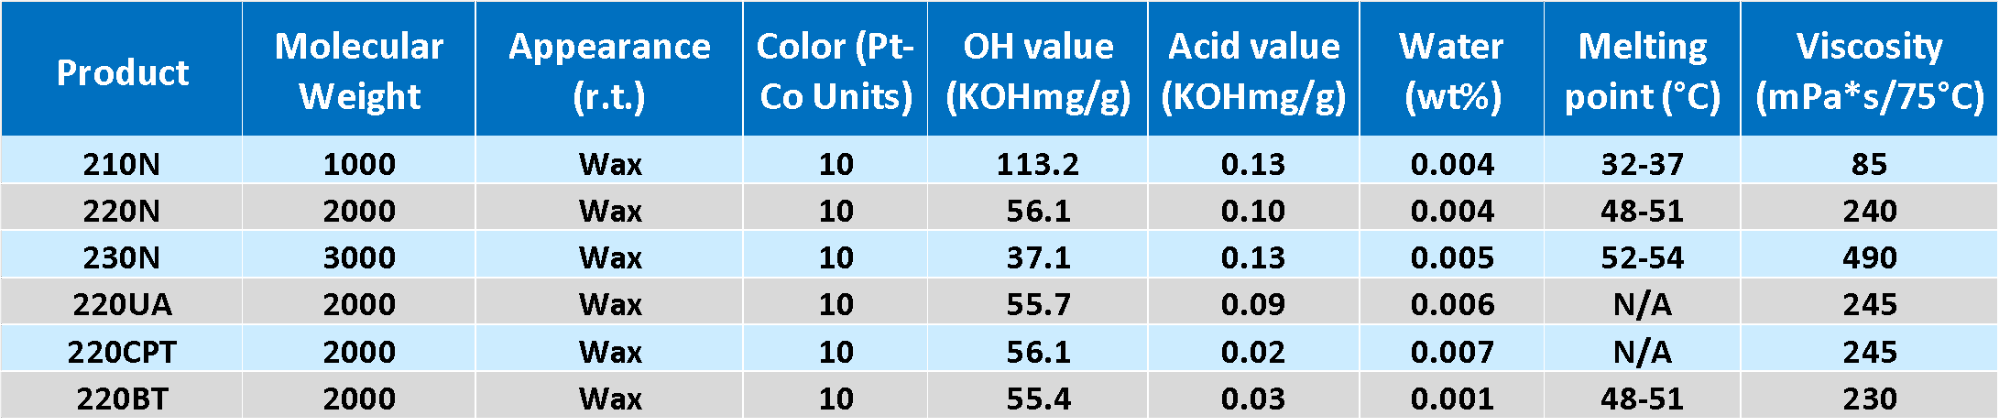 commercial series of N-grade polycaprolactone polyols